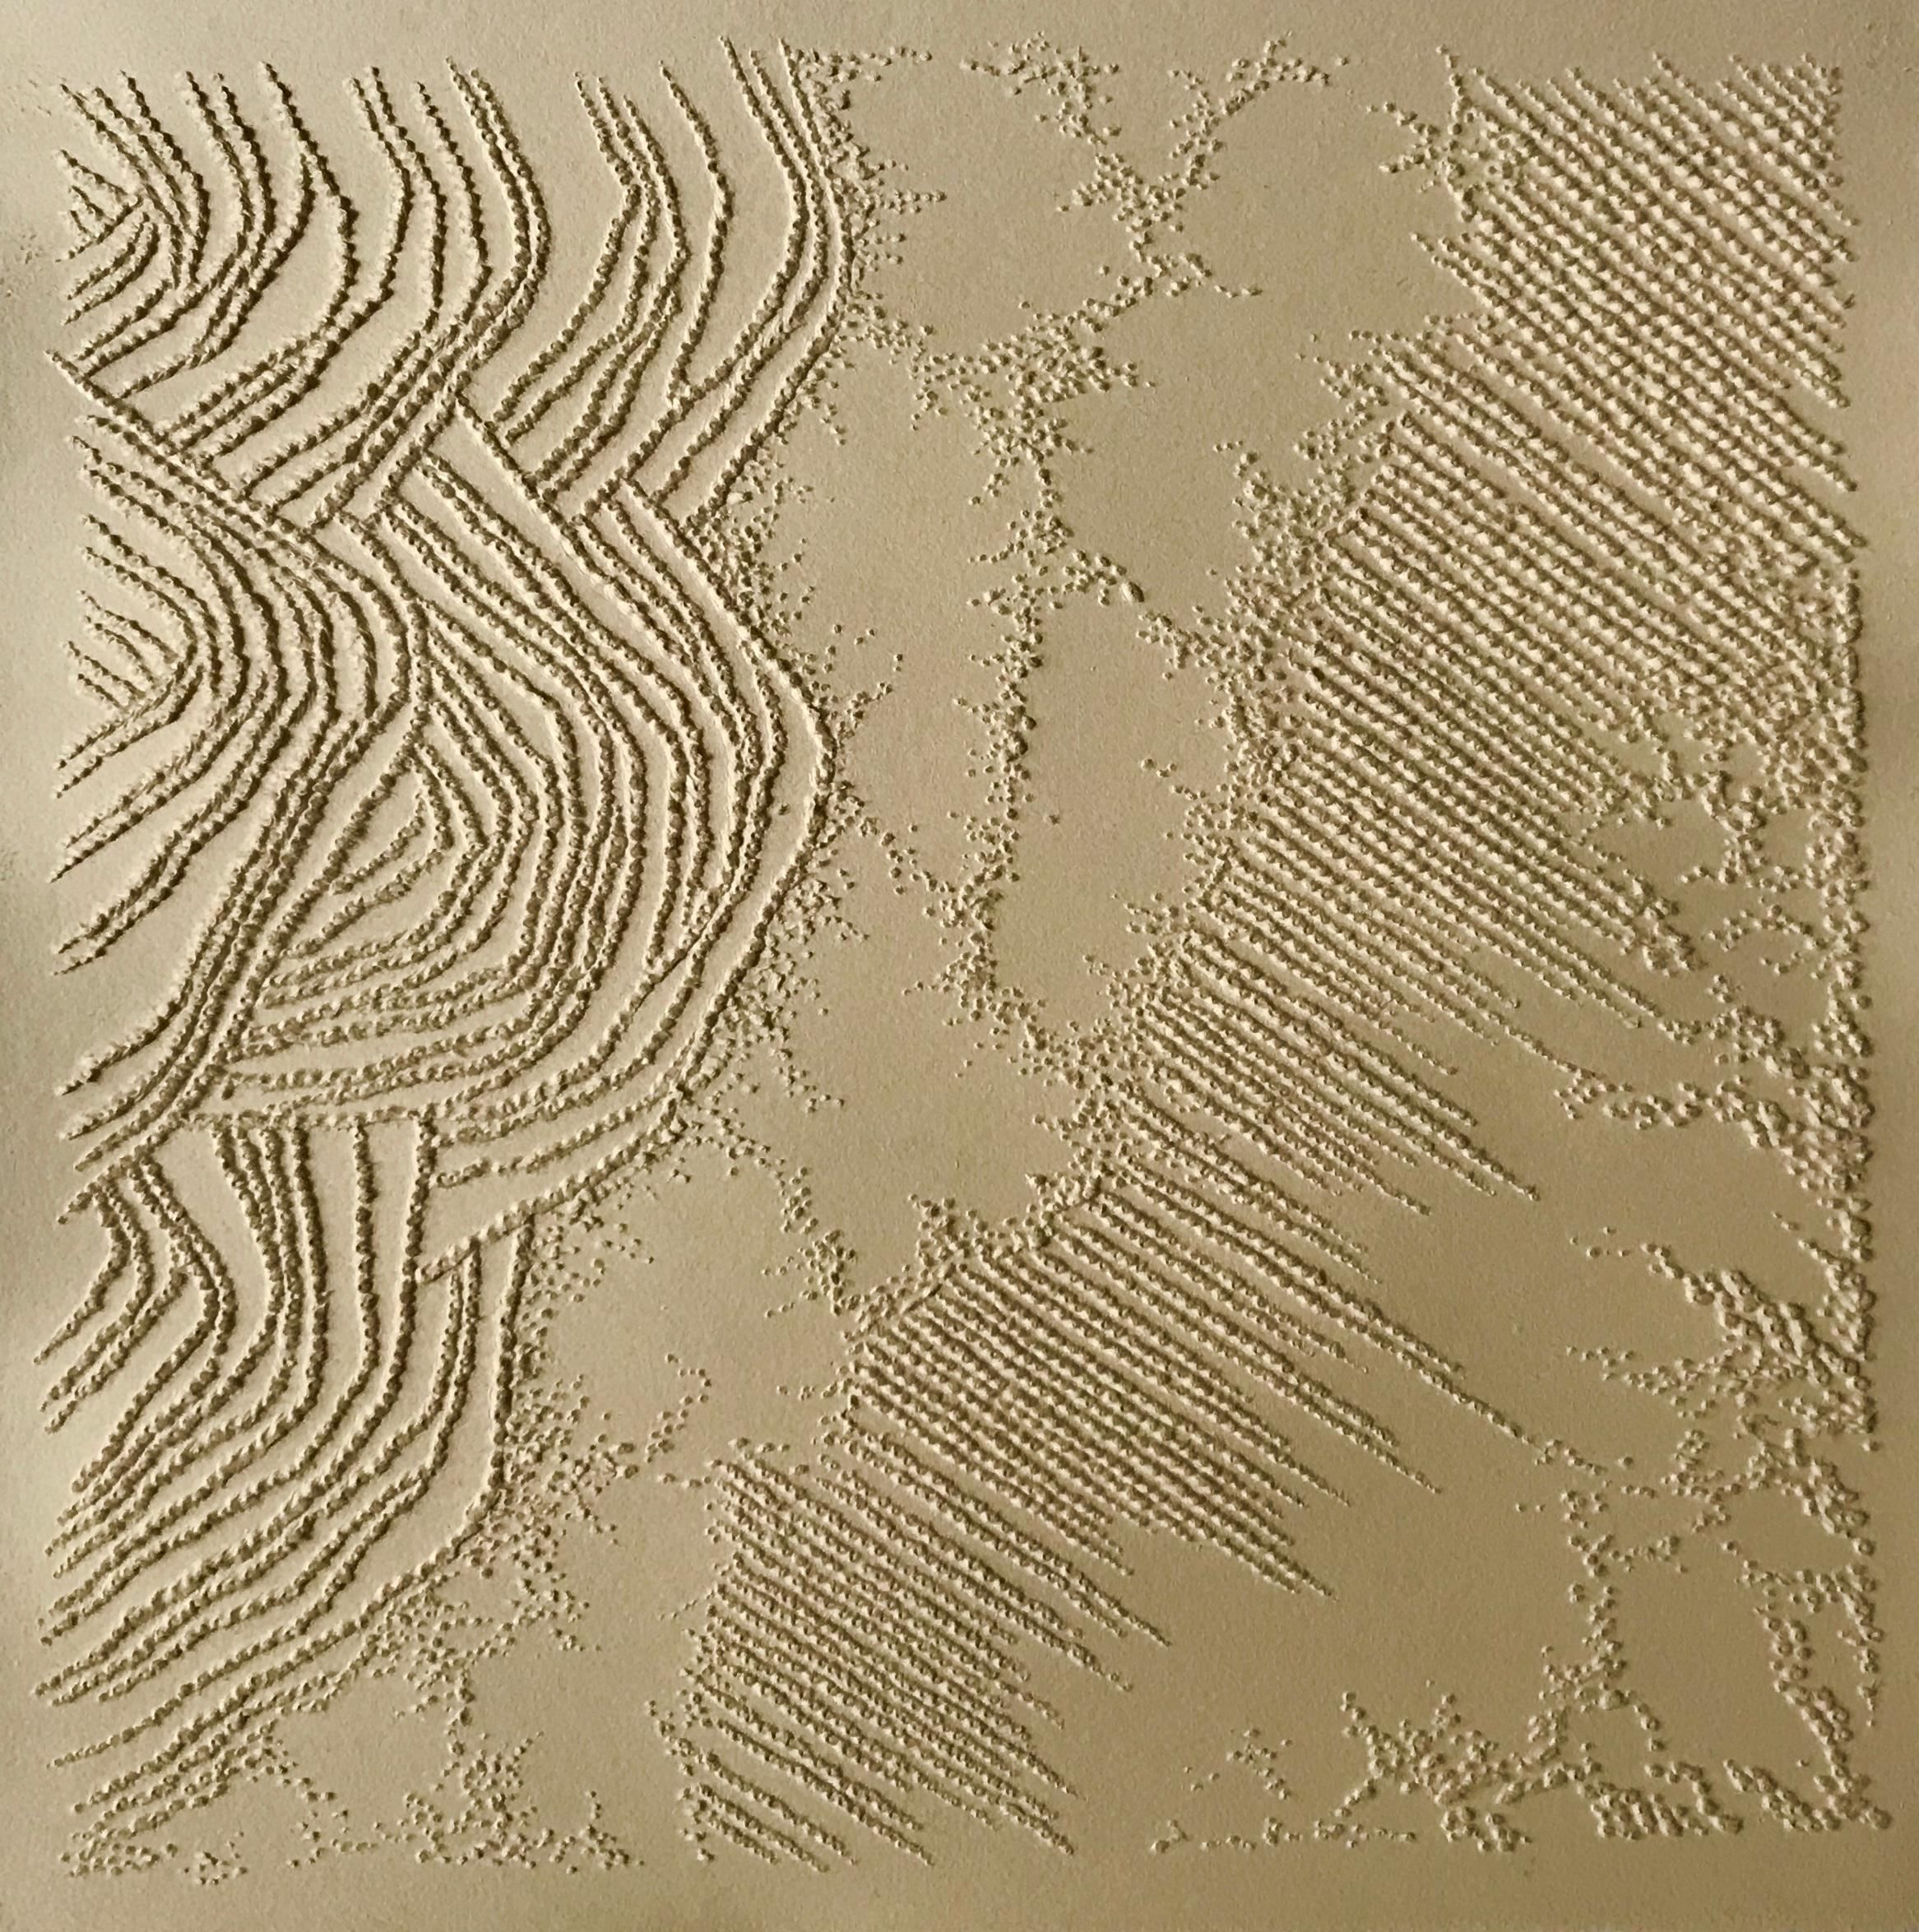 Ochre gold 3 - intricate 3D abstract landscape seascape drawing on paper